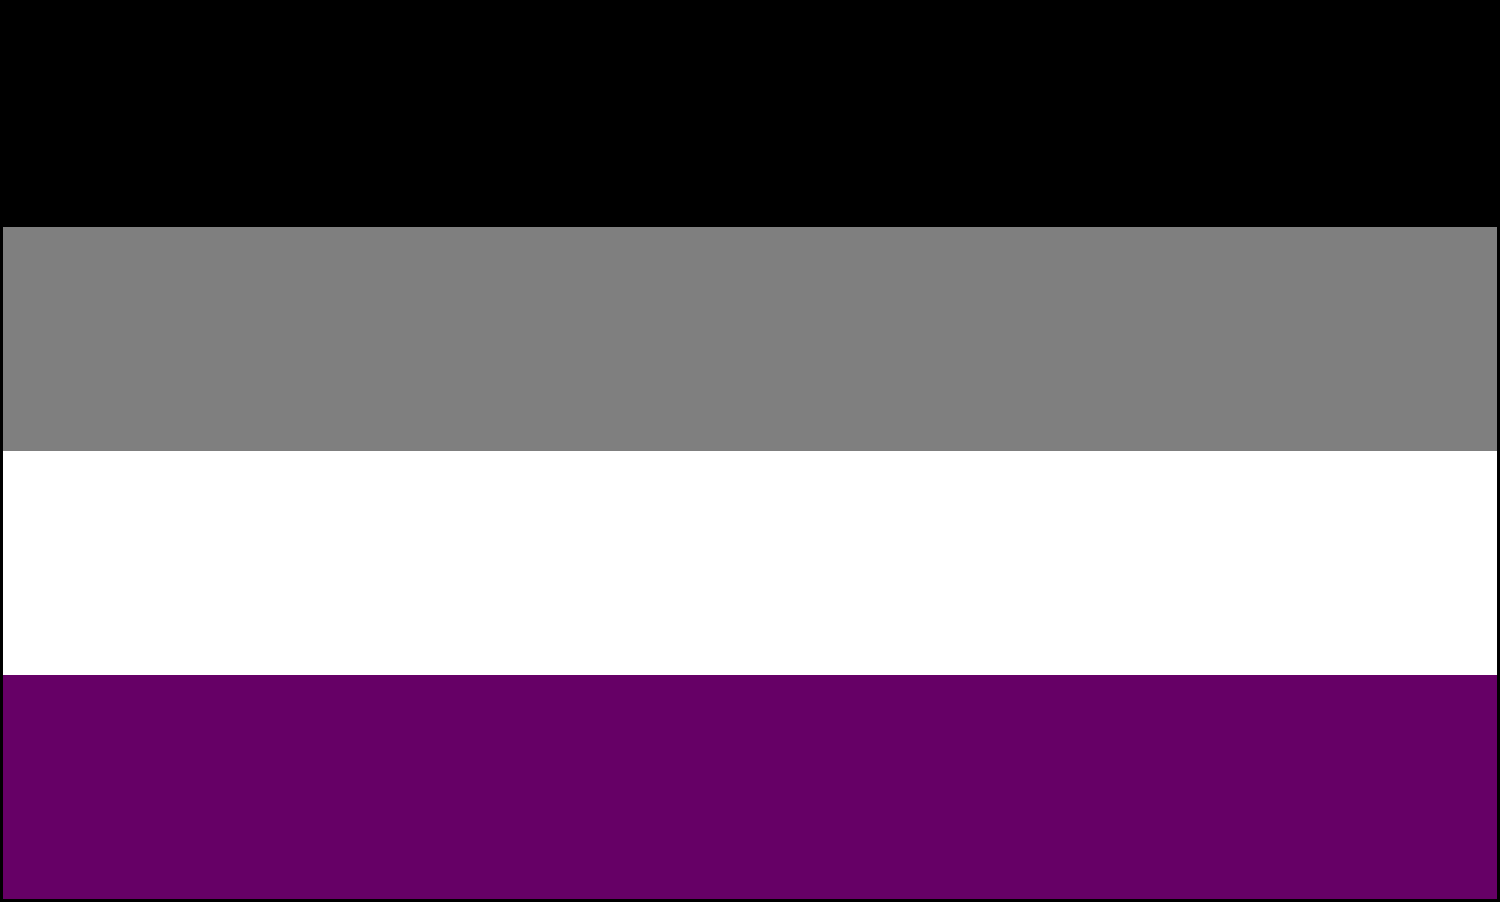 http://www.asexualityarchive.com/wp-content/uploads/2012/02/AceFlag.png